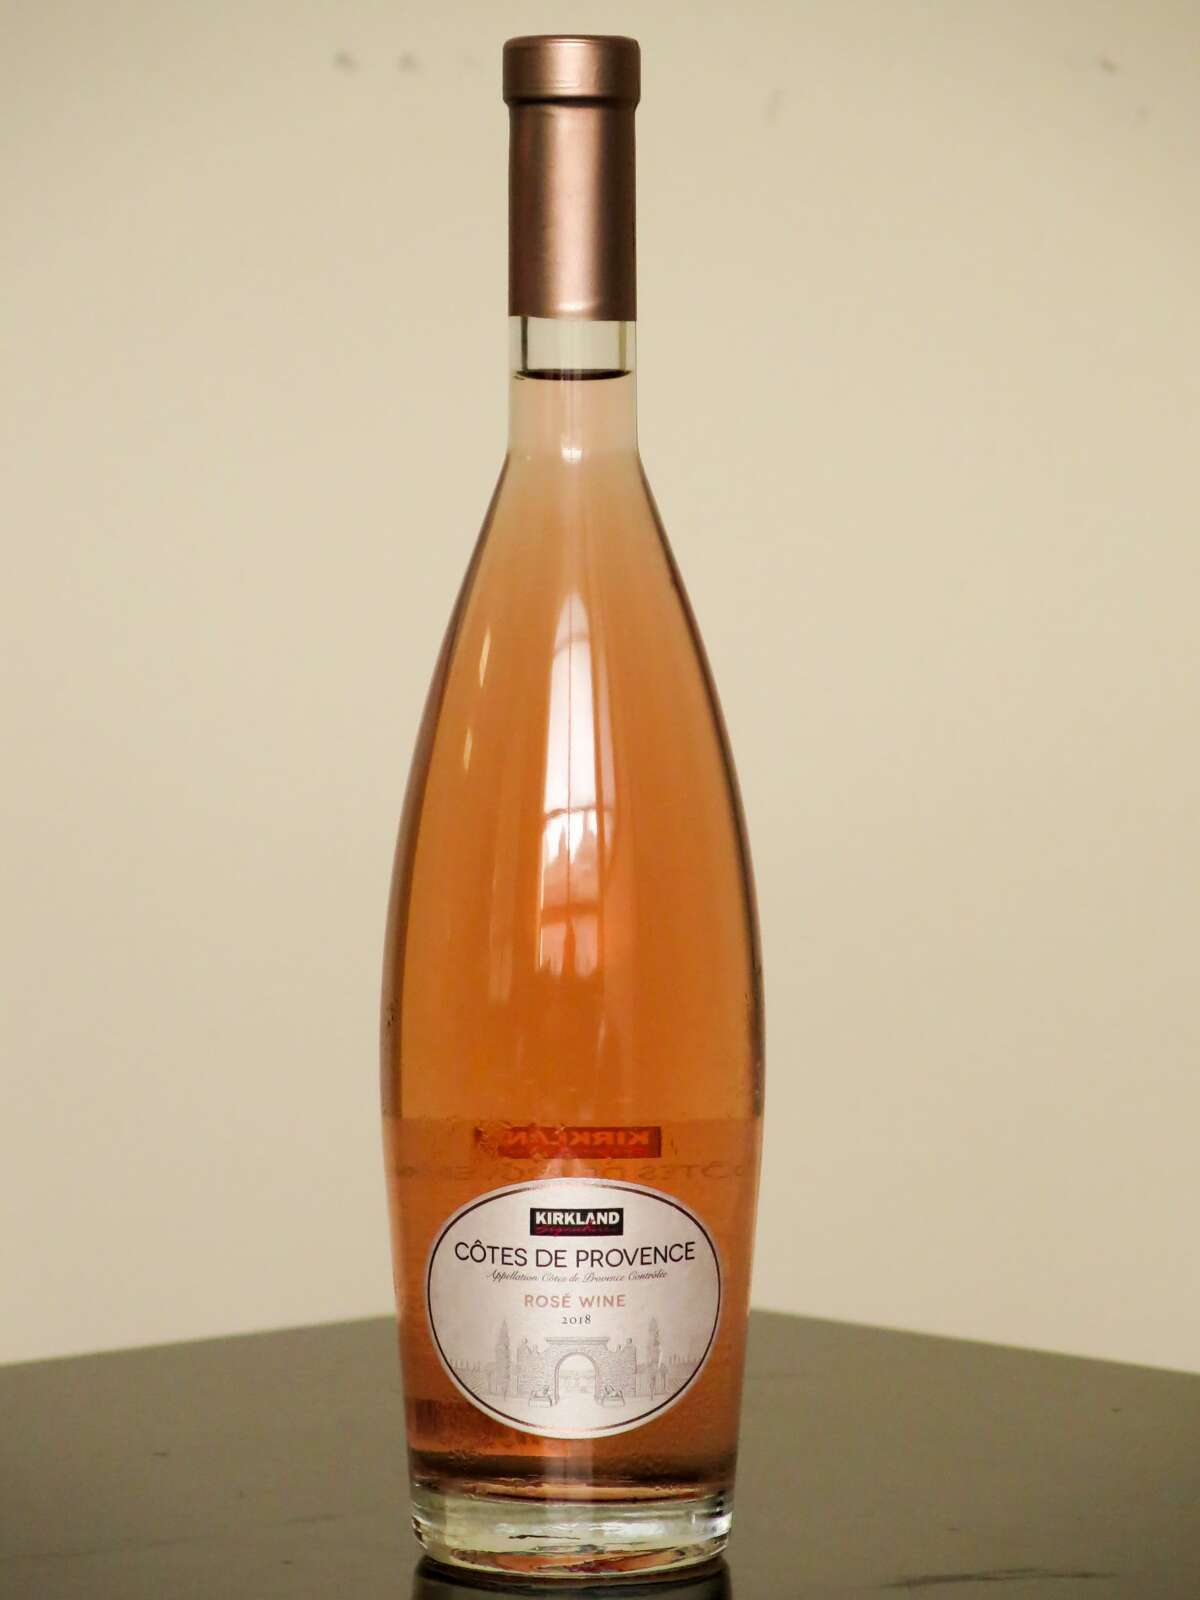 Cotes de Provence Rose (2018) Price: 8.79 Score: 1.7   The clear loser of the bunch and a shame to rosés everywhere. Our tasters said: